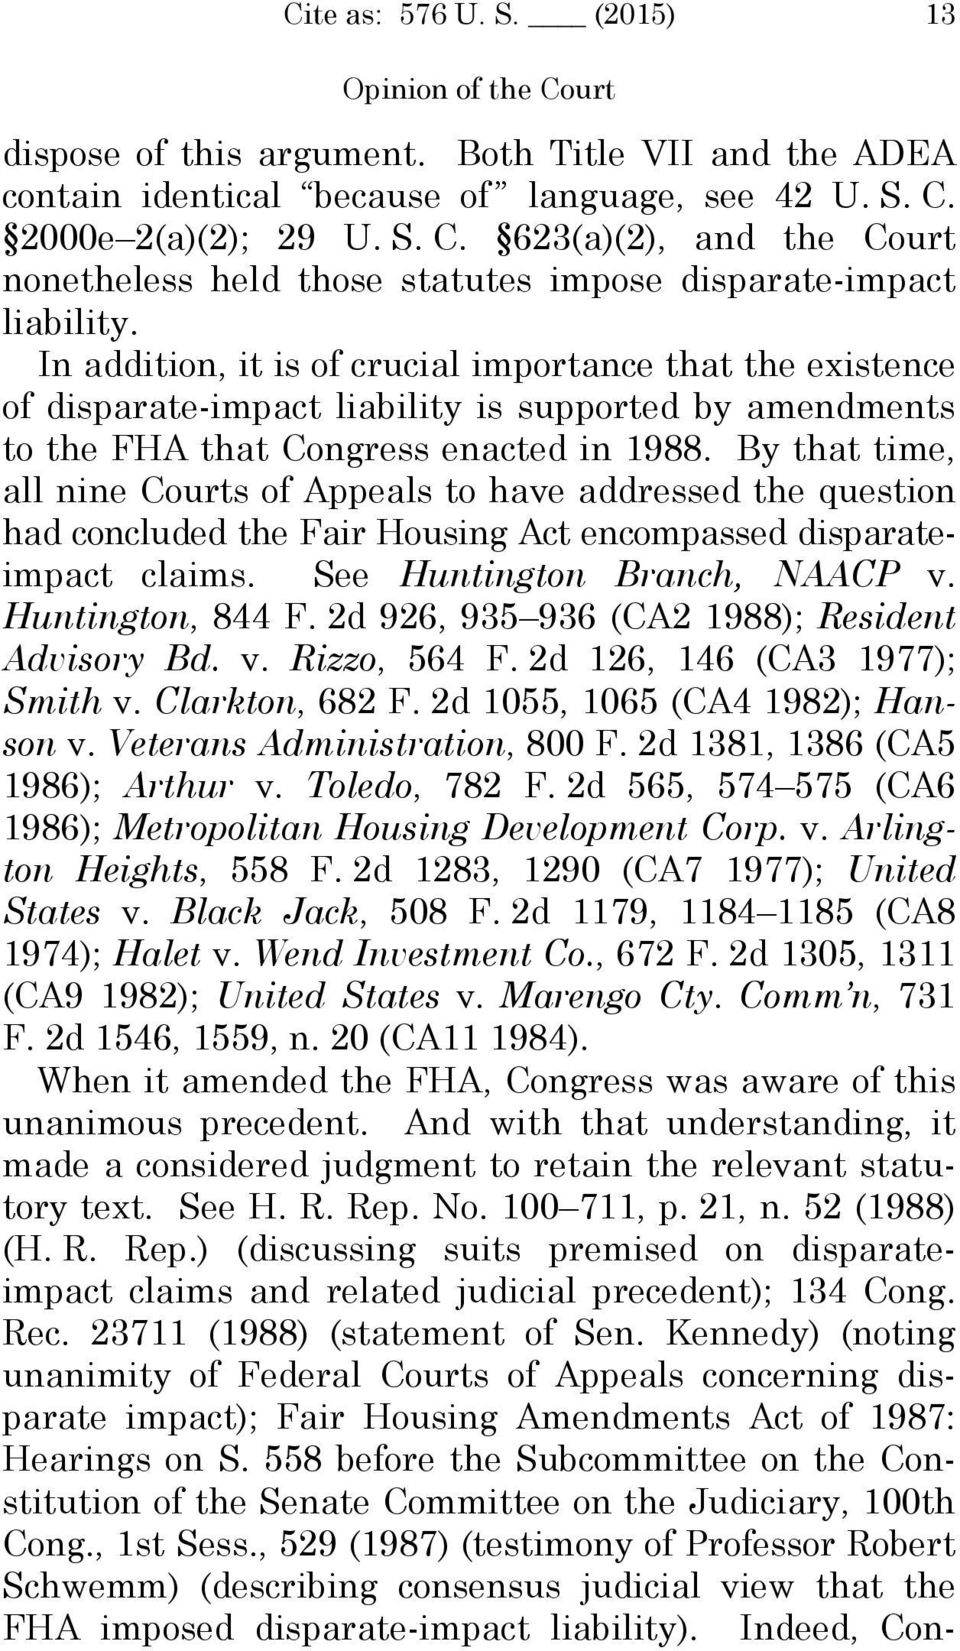 By that time, all nine Courts of Appeals to have addressed the question had concluded the Fair Housing Act encompassed disparateimpact claims. See Huntington Branch, NAACP v. Huntington, 844 F.